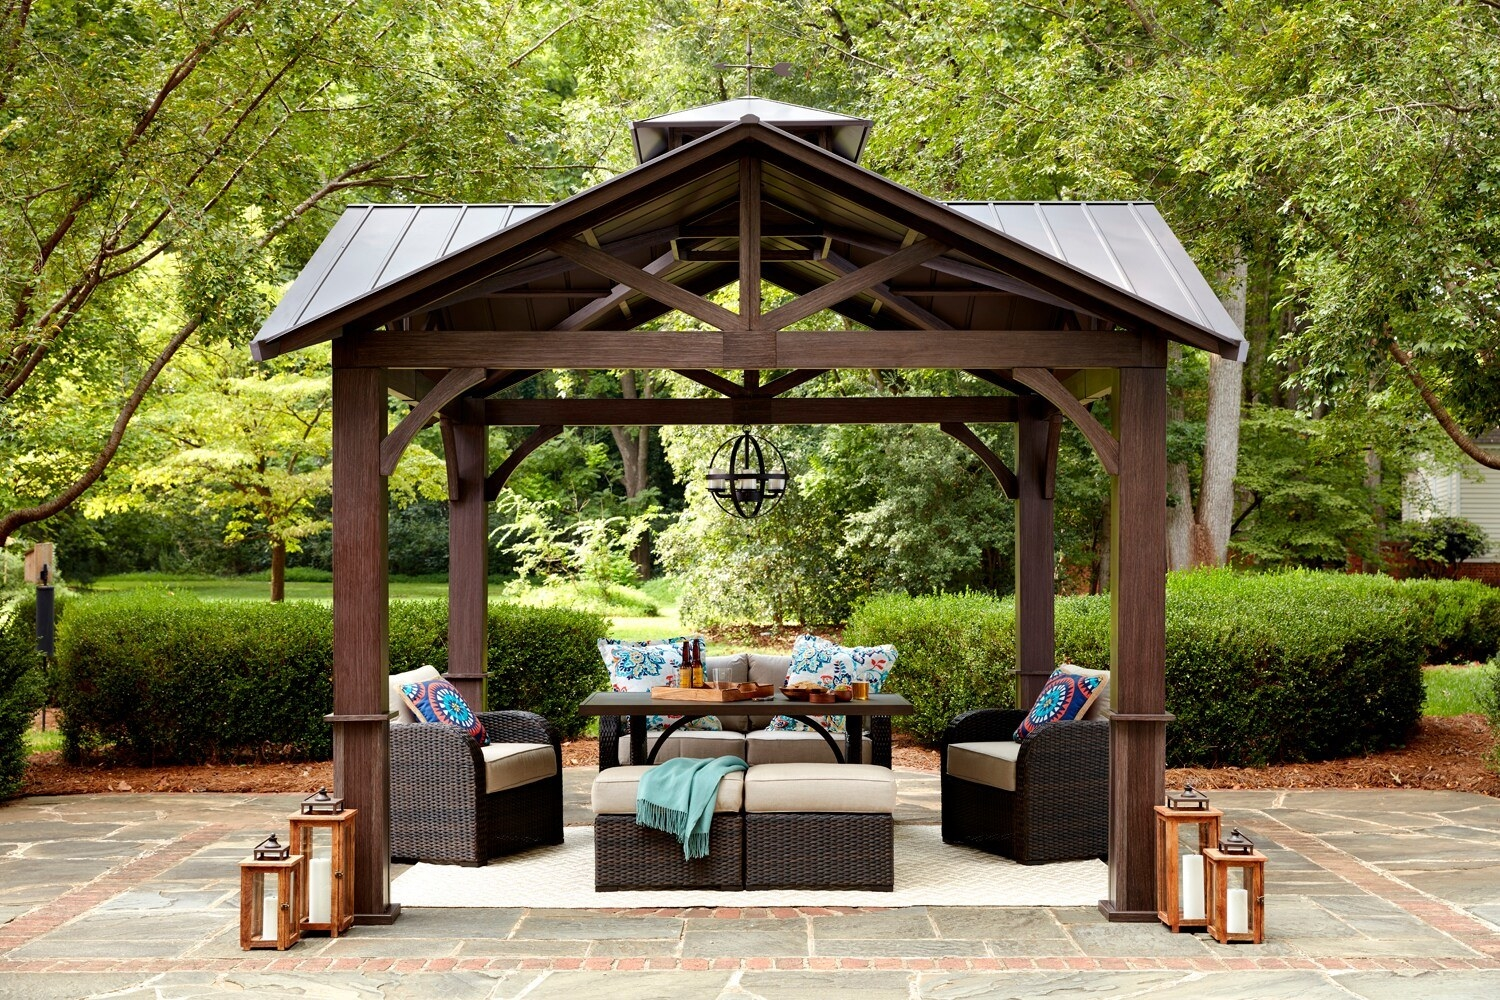 An image of a semi-gazebo with steel roof